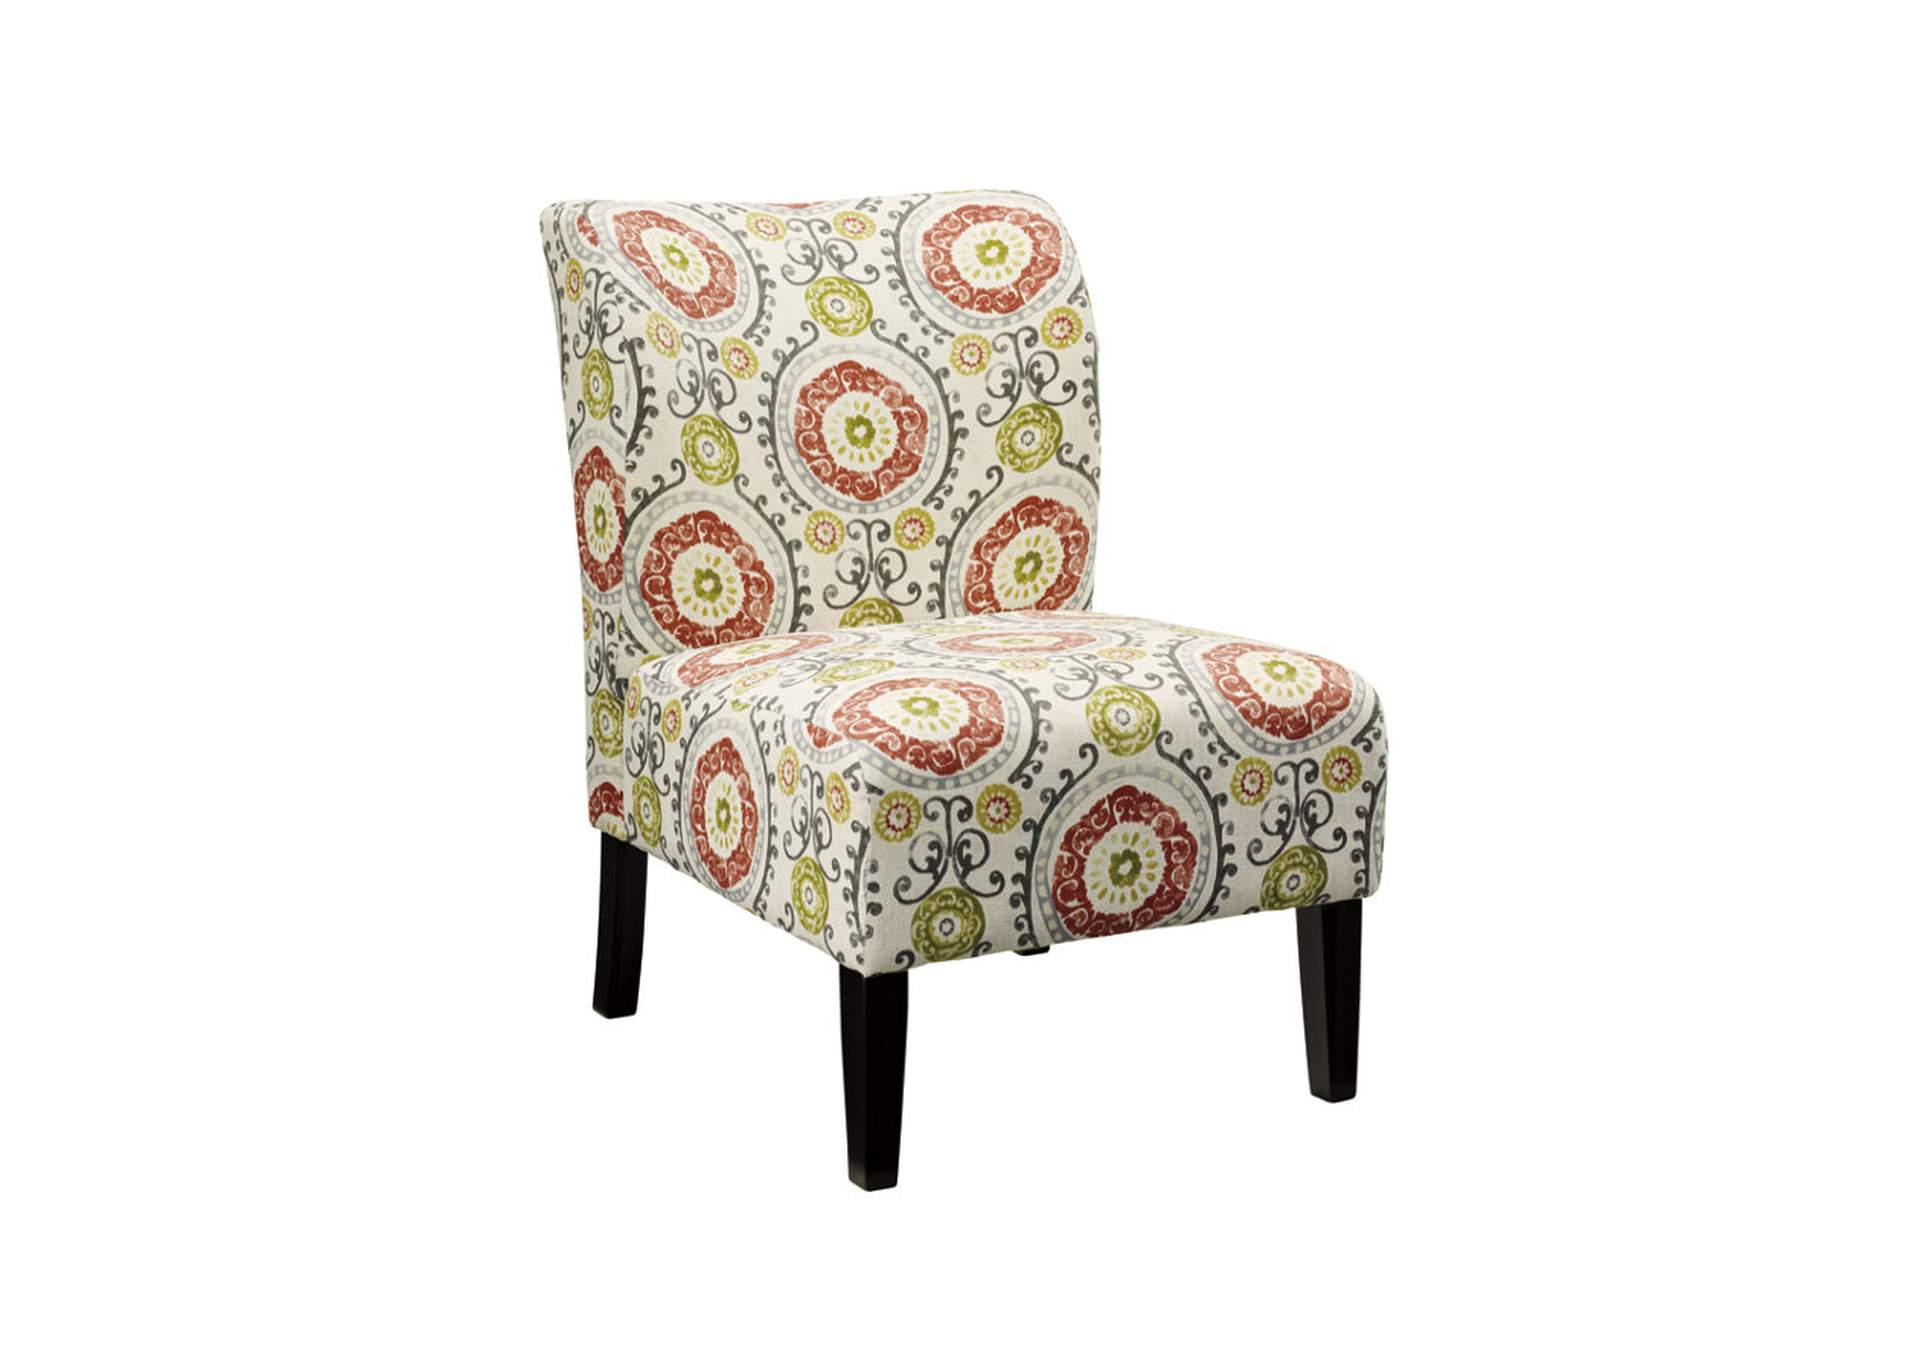 Honnally Floral Accent Chair,Signature Design By Ashley